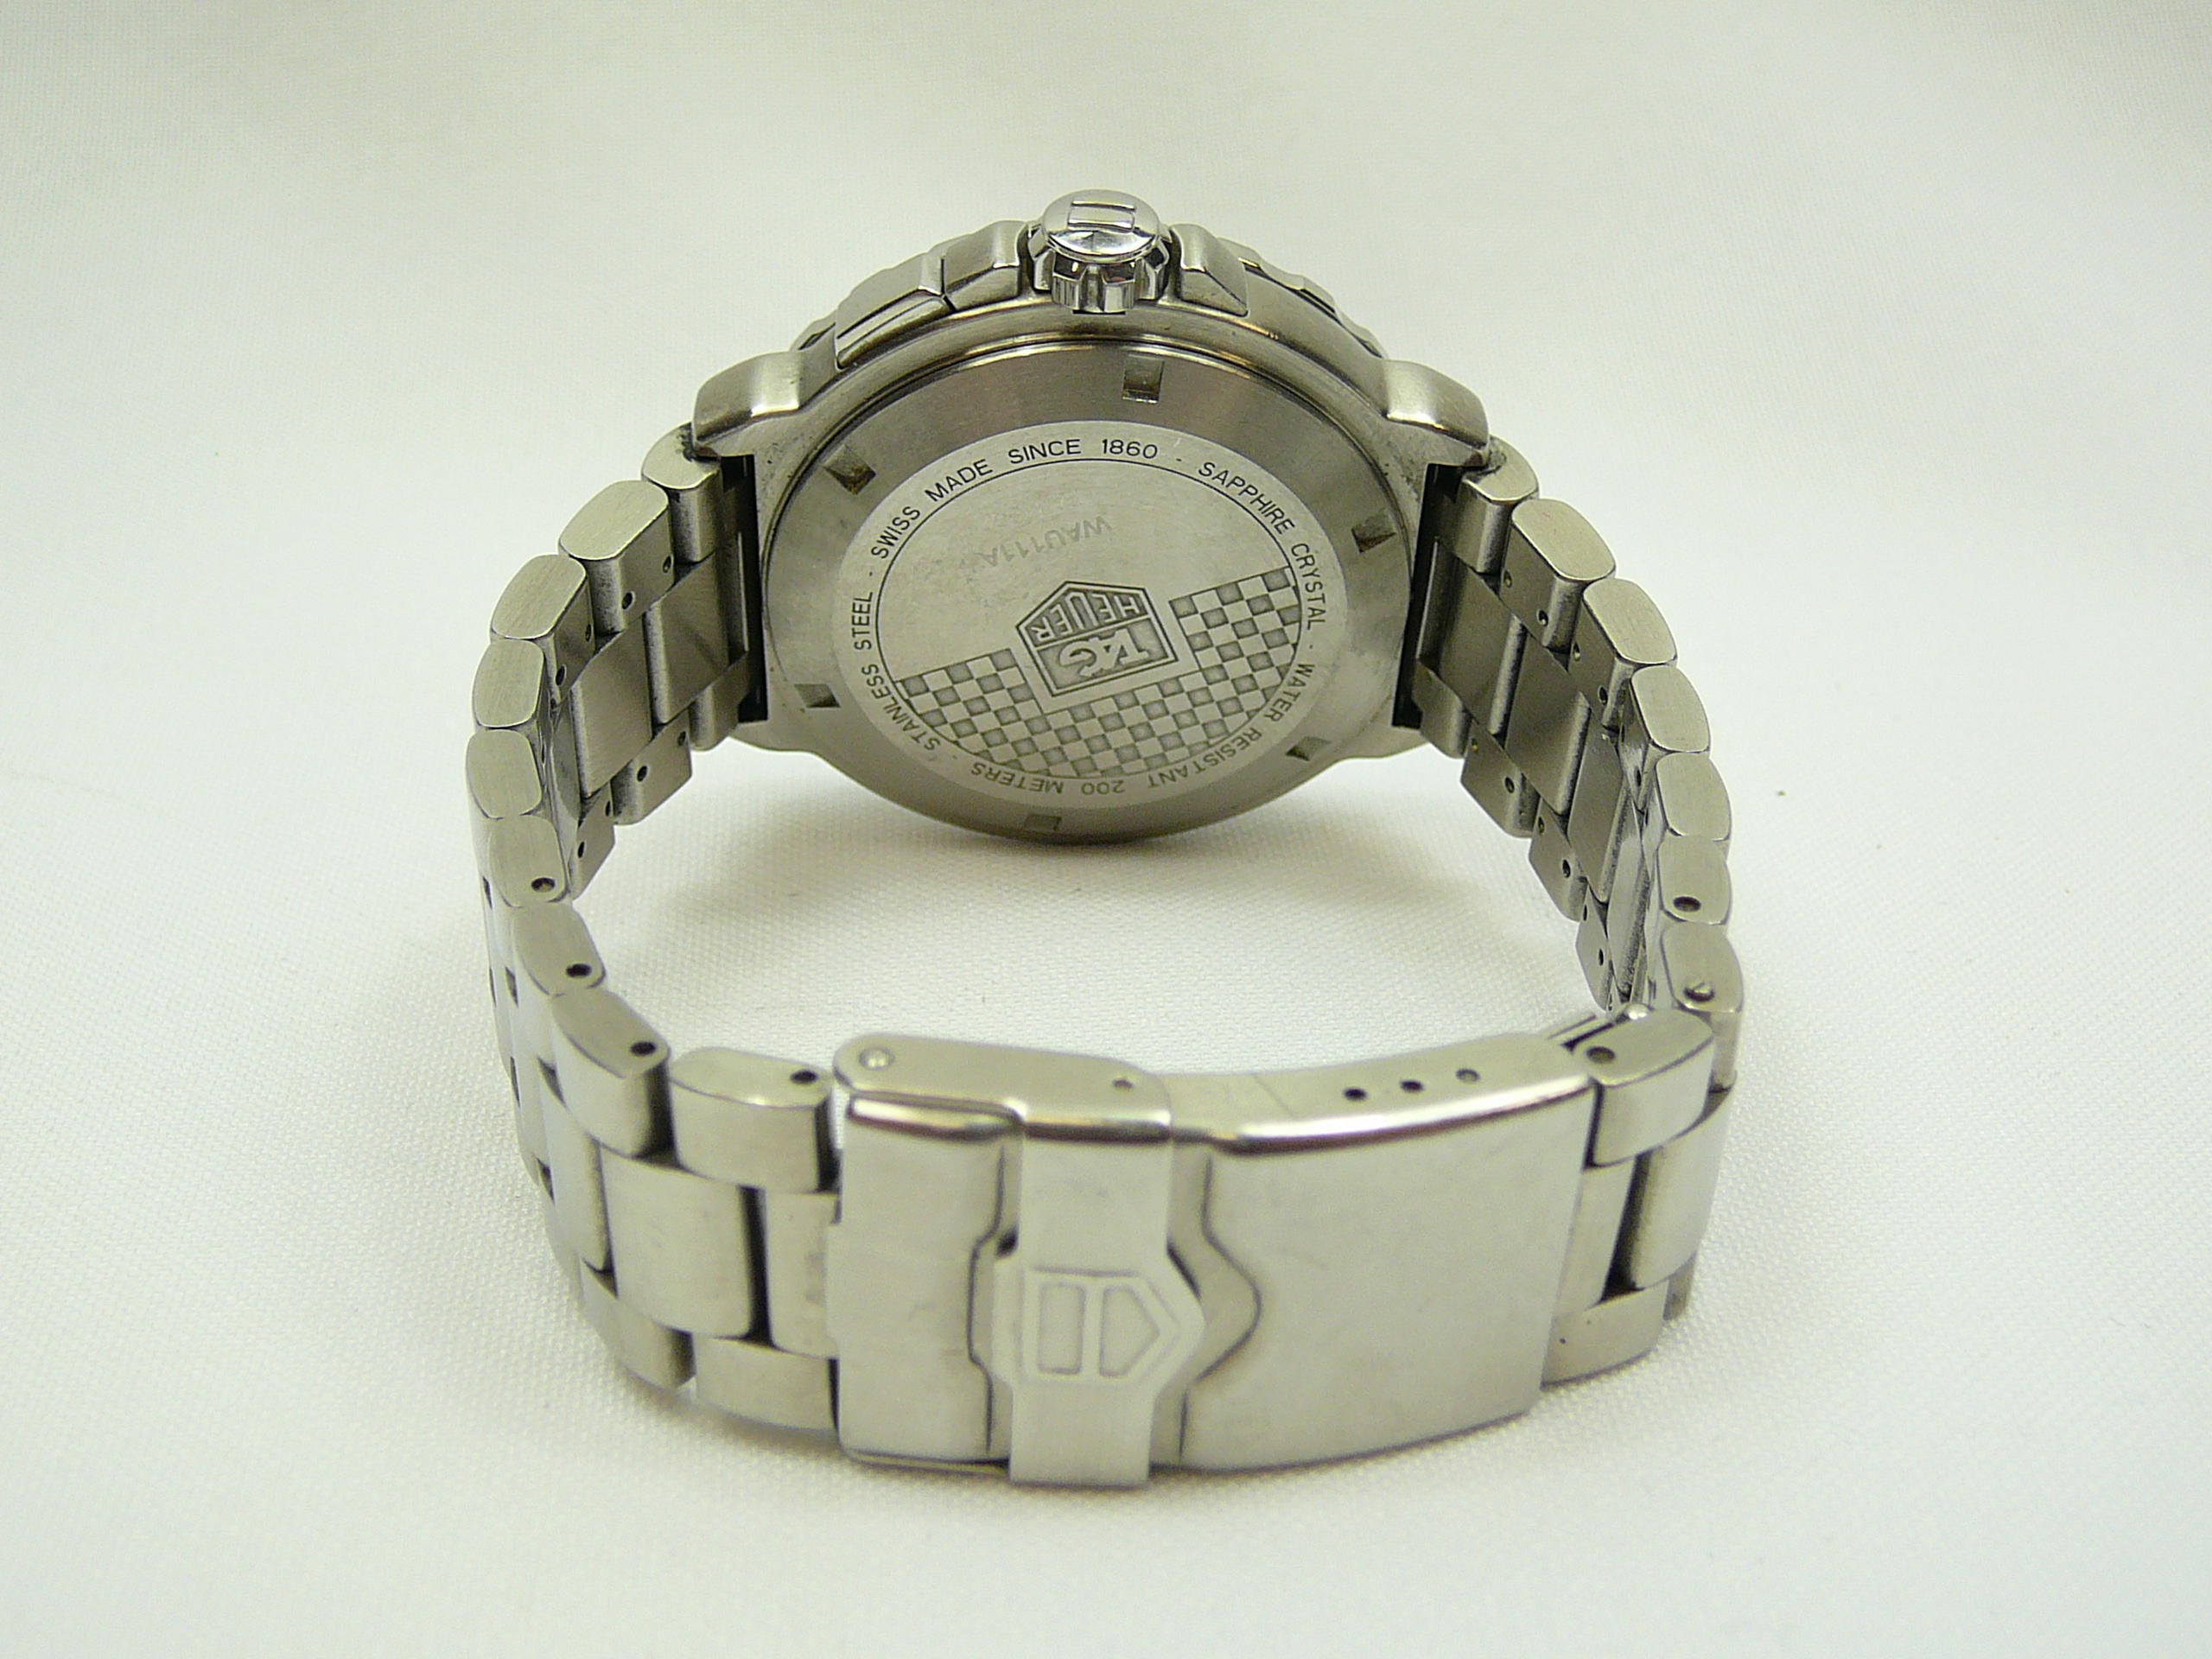 Gents Tag Heuer Wrist Watch - Image 4 of 4